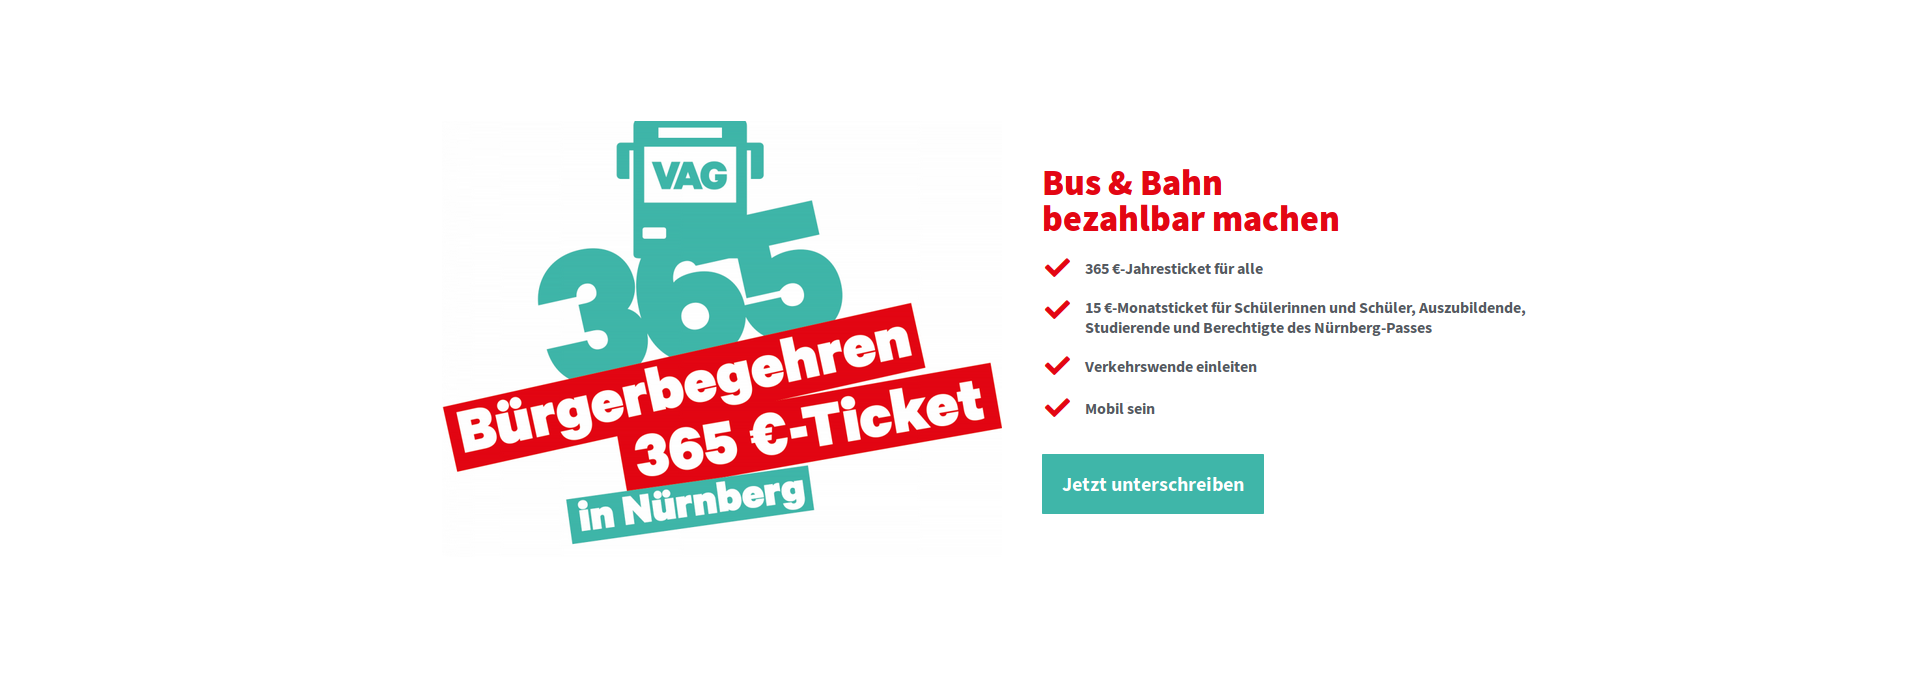 Bür­ger­be­geh­ren 365 € — Ticket